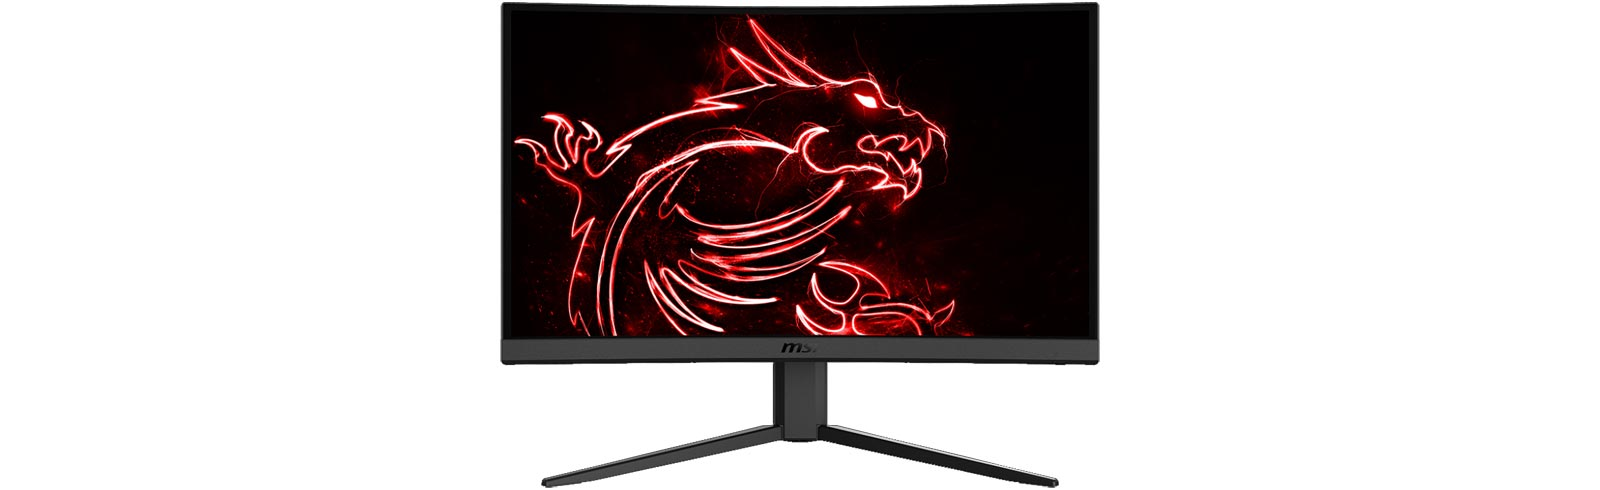 MSI announces a duo of Optix monitors, will be launched later in September